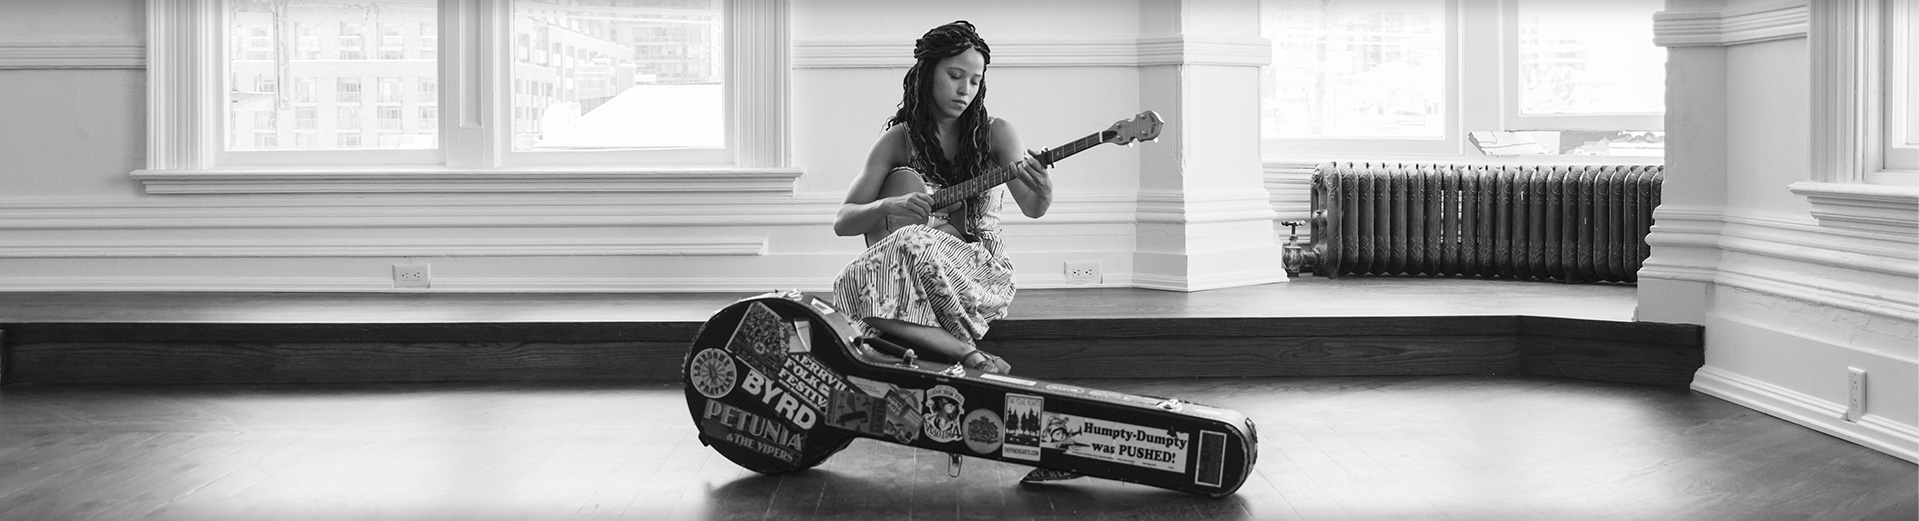 Kaia Kater with her MM-150LN banjo